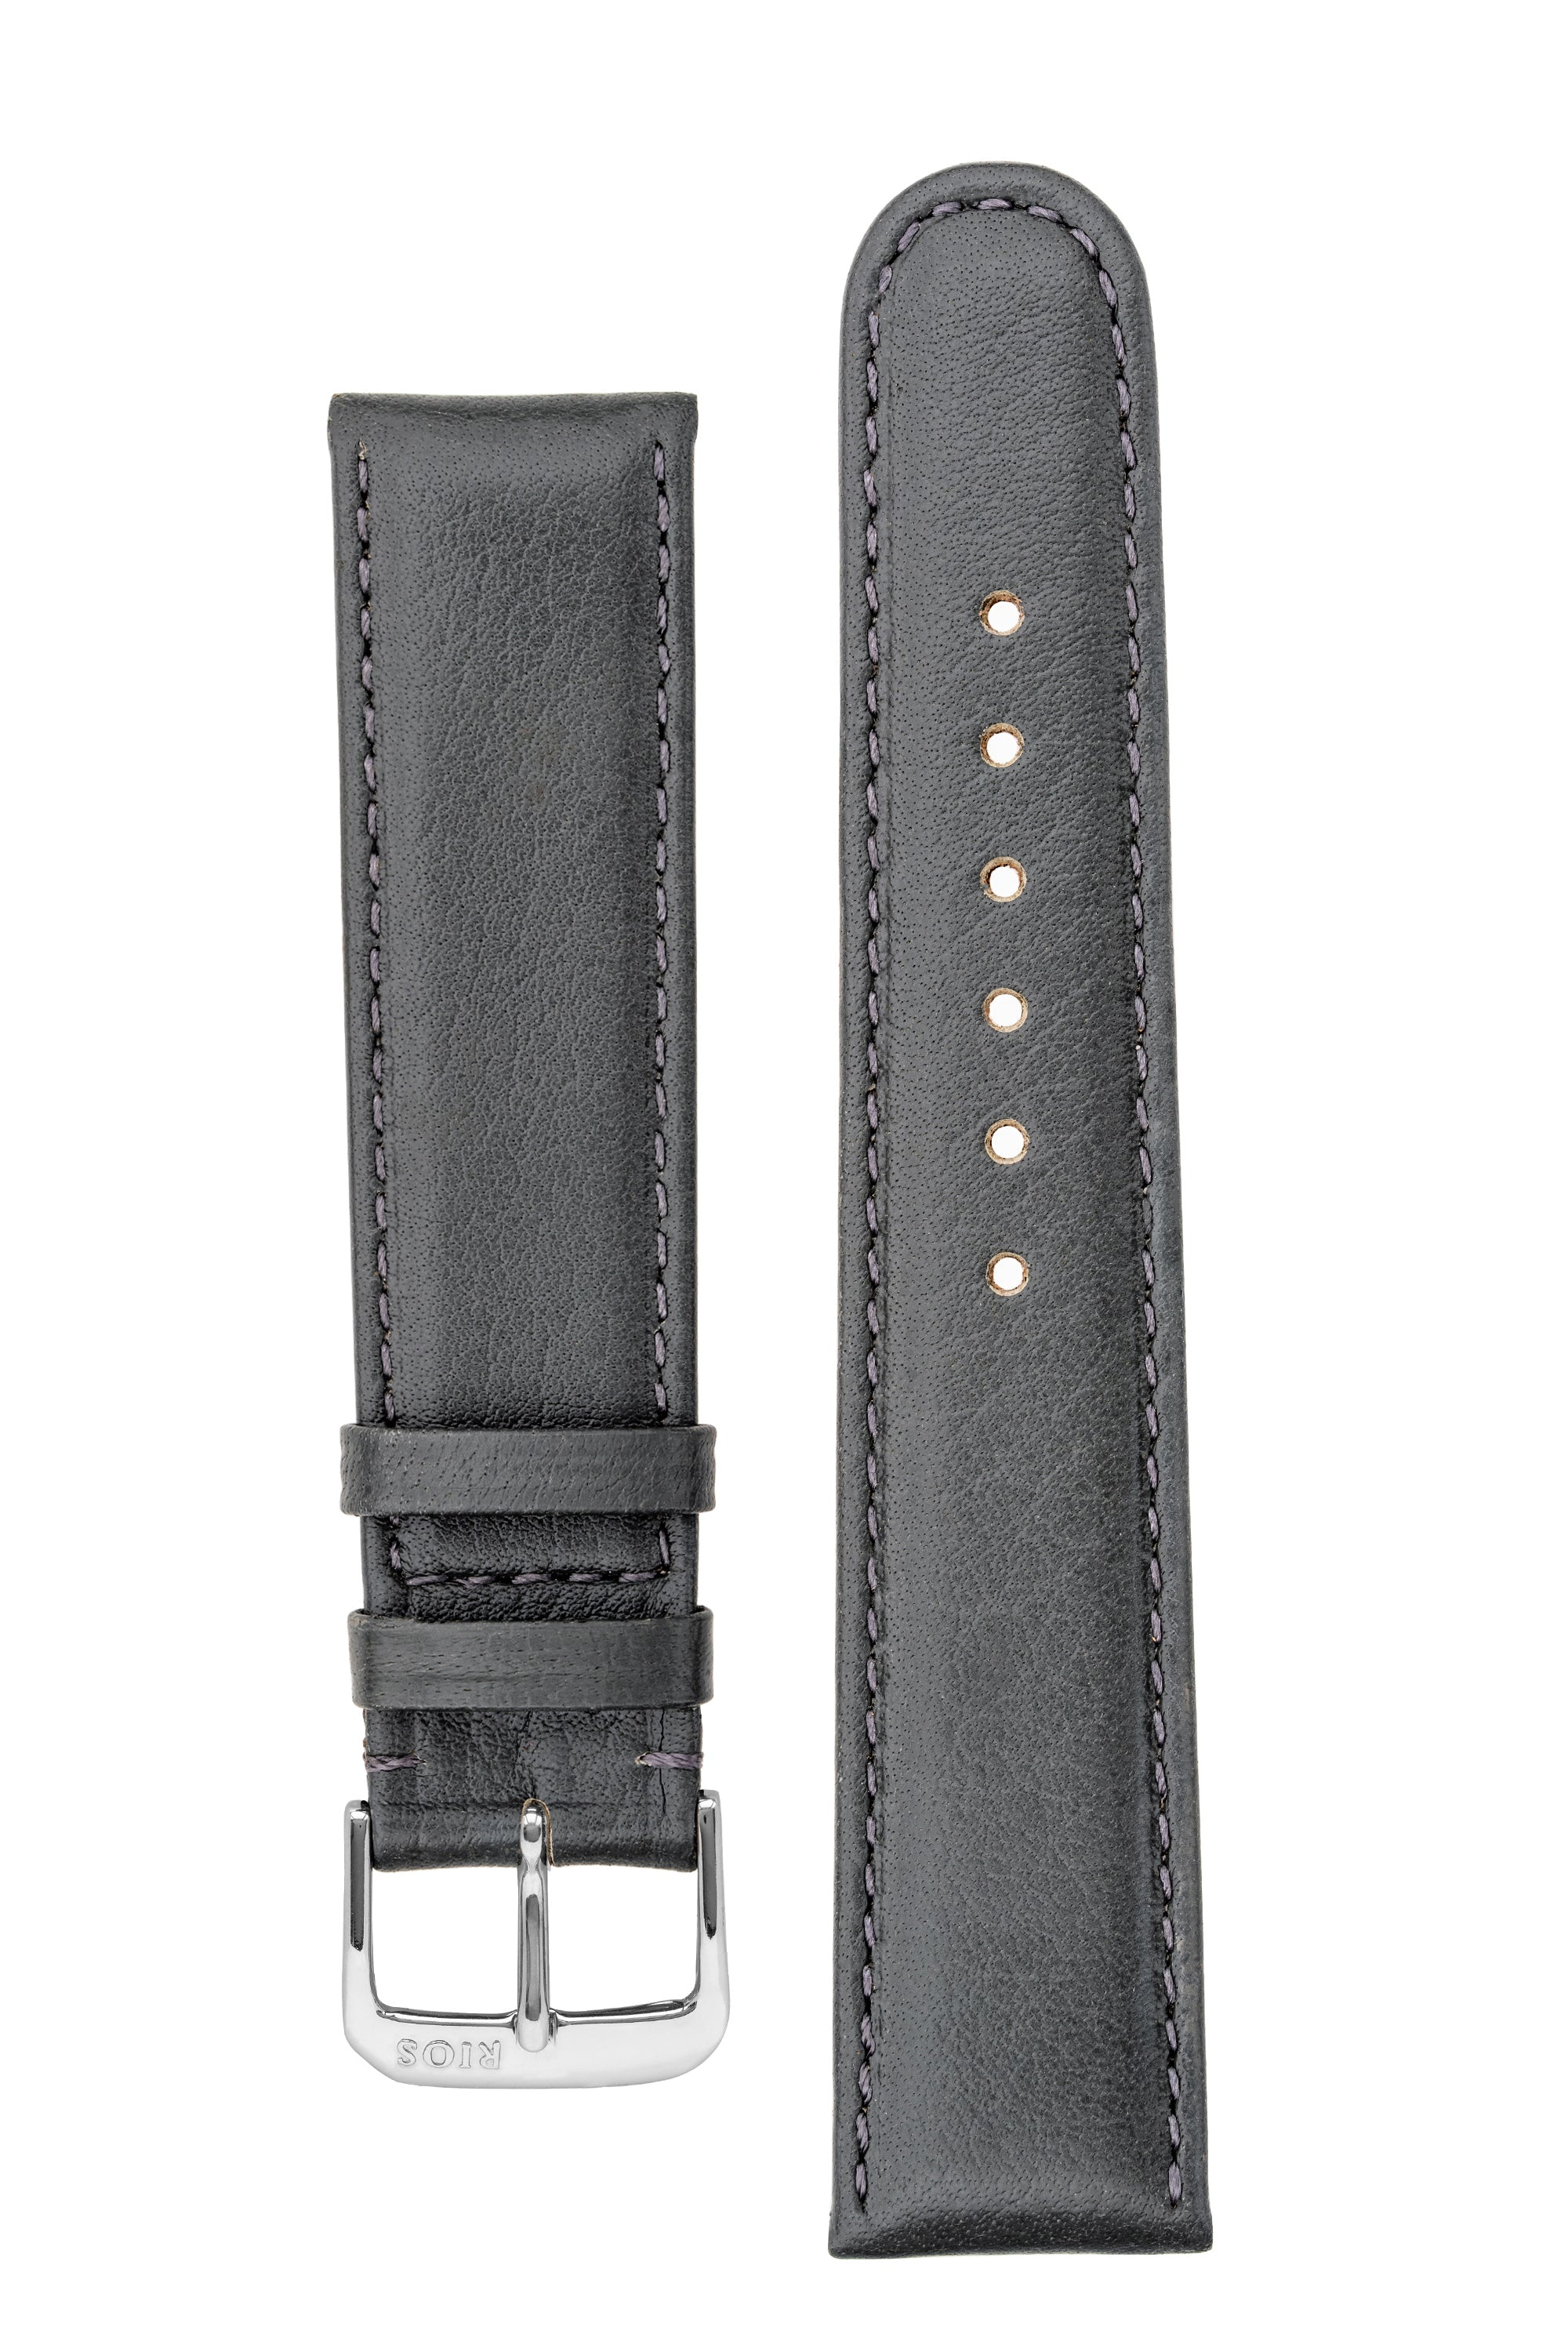 Rios1931 ARIZONA Genuine Saddle Leather Quick-Release Watch Strap in STONE GREY